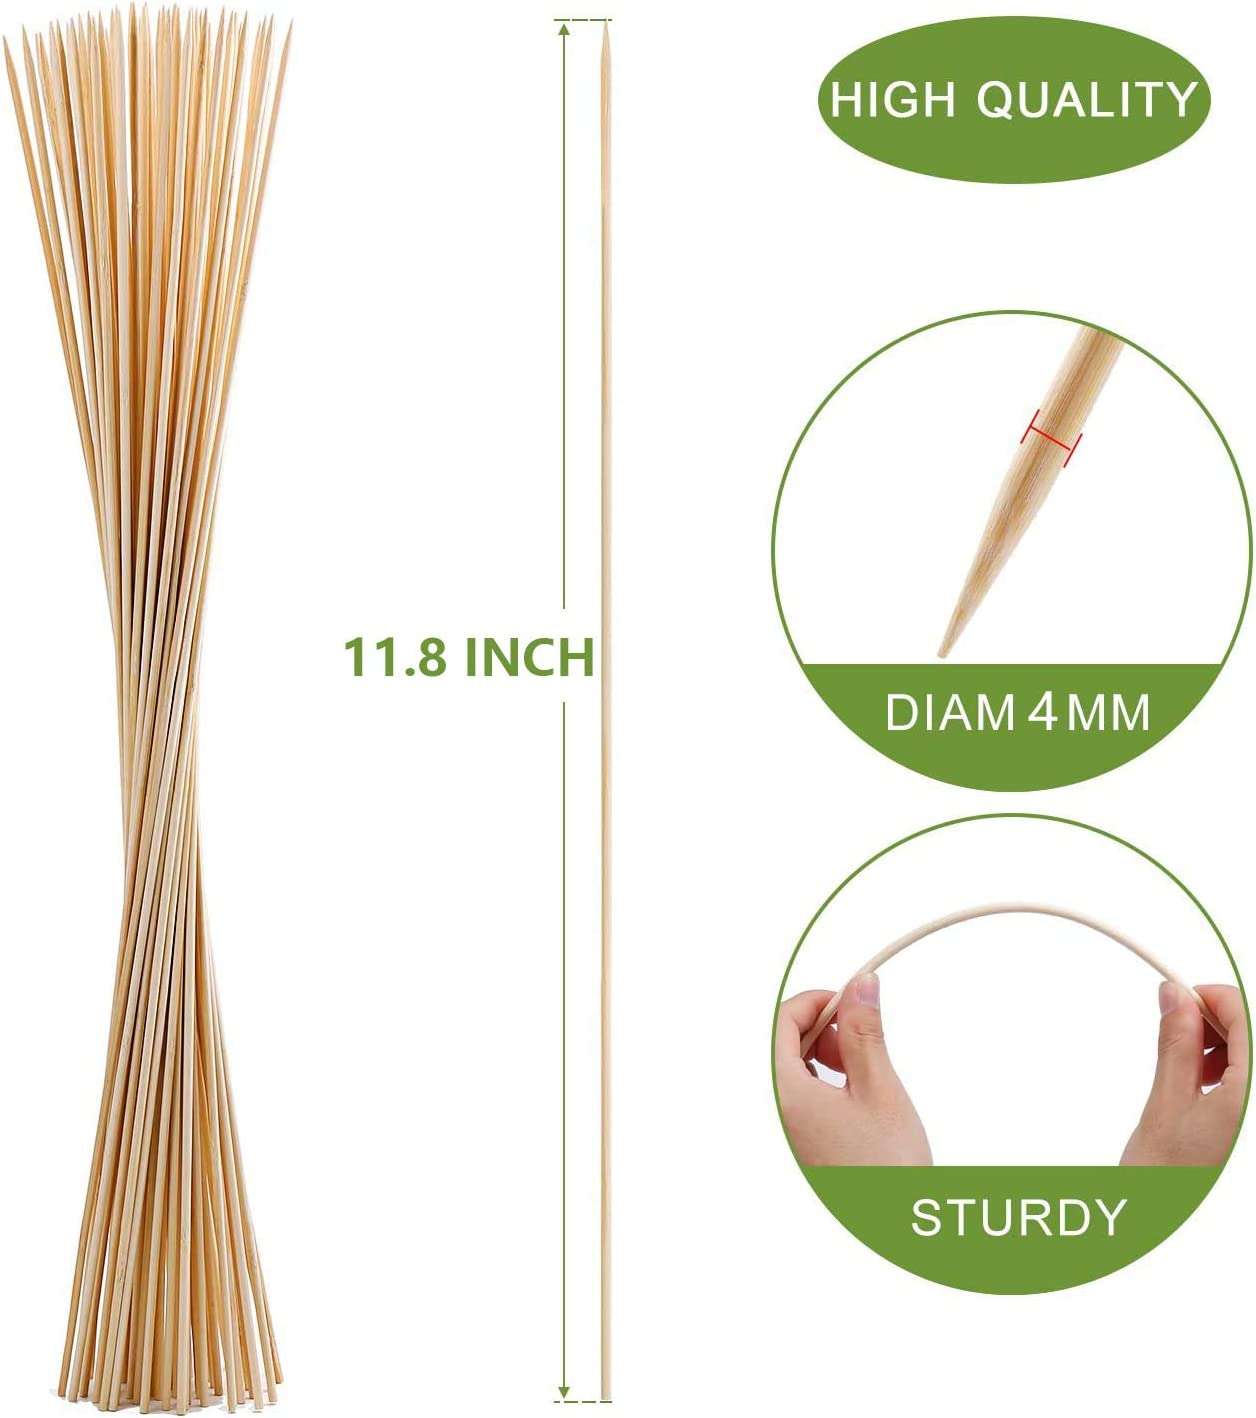 Marshmallow Fondue 100 Pack of 12 inch Organic Wooden Barbecue Kabob Skewers,Best for Barbecue Natural Bamboo Skewers Cooking Grilling,Fruit Sticks,Kitchen,BBQ,Crafting and Party